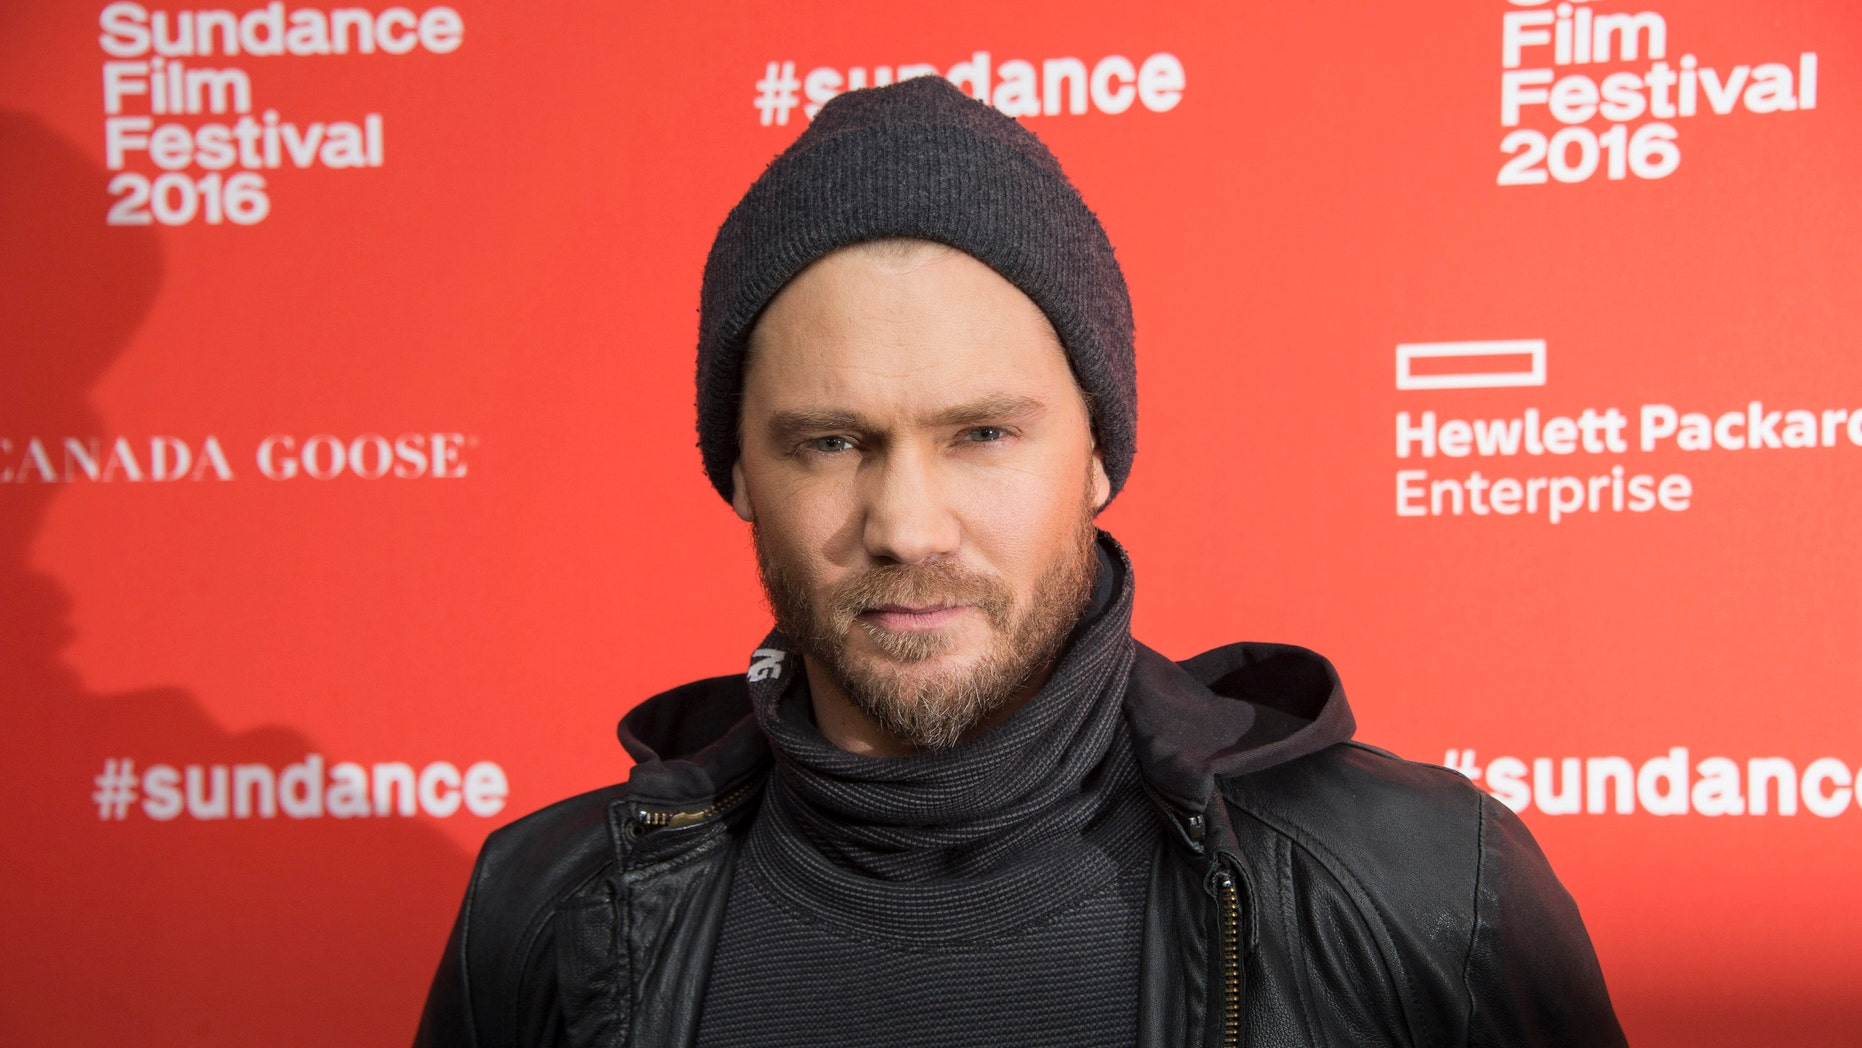 """Actor Chad Michael Murray poses at the premiere of """"Outlaws and Angels"""" during the 2016 Sundance Film Festival on Tuesday, Jan. 26, 2016, in Park City, Utah. (Photo by Arthur Mola/Invision/AP)"""